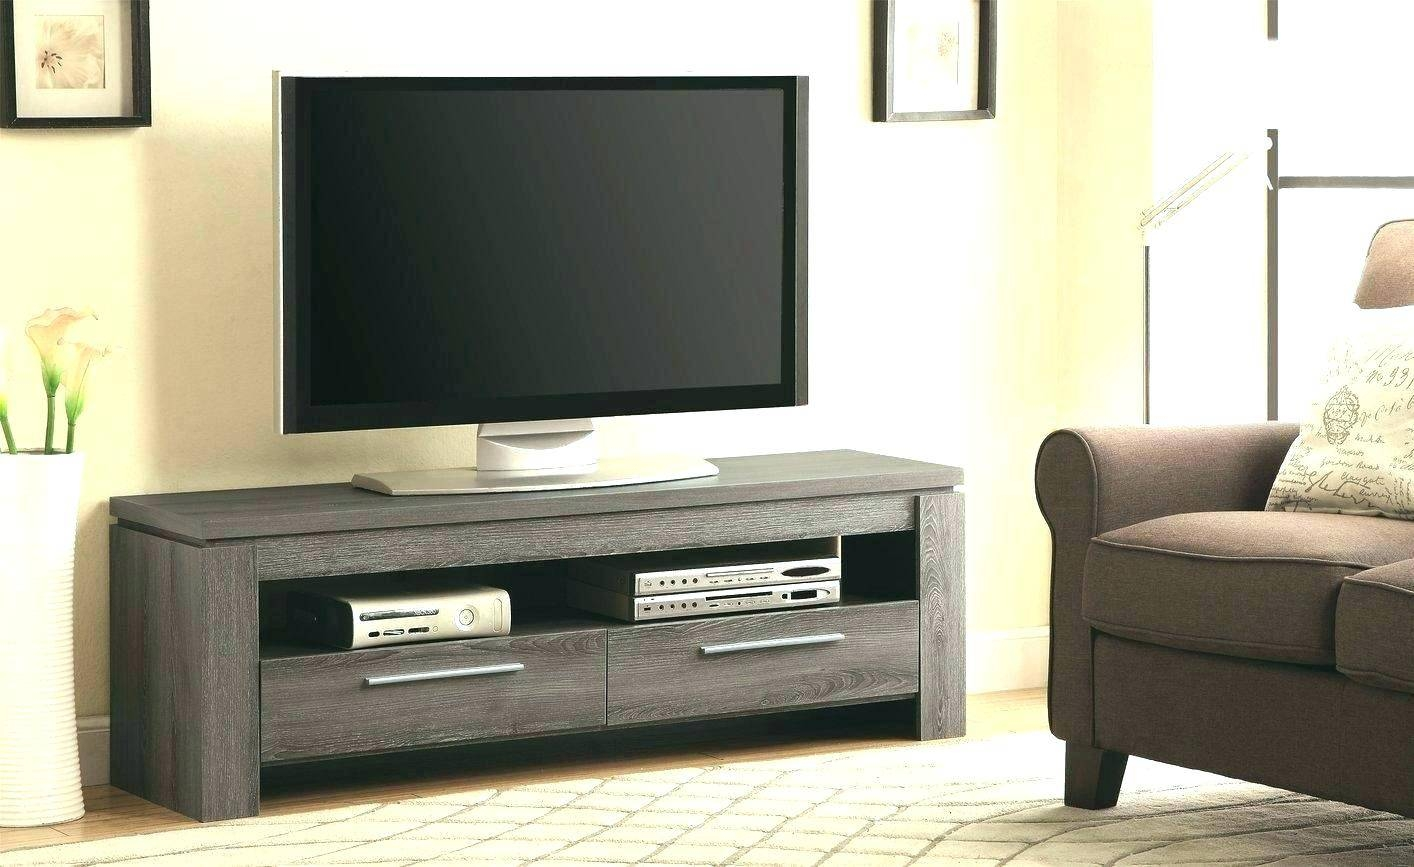 Tv Stand : Chic Large Size Of Tv Standssolid Oak Country Corner Tv Throughout French Country Tv Stands (View 12 of 15)